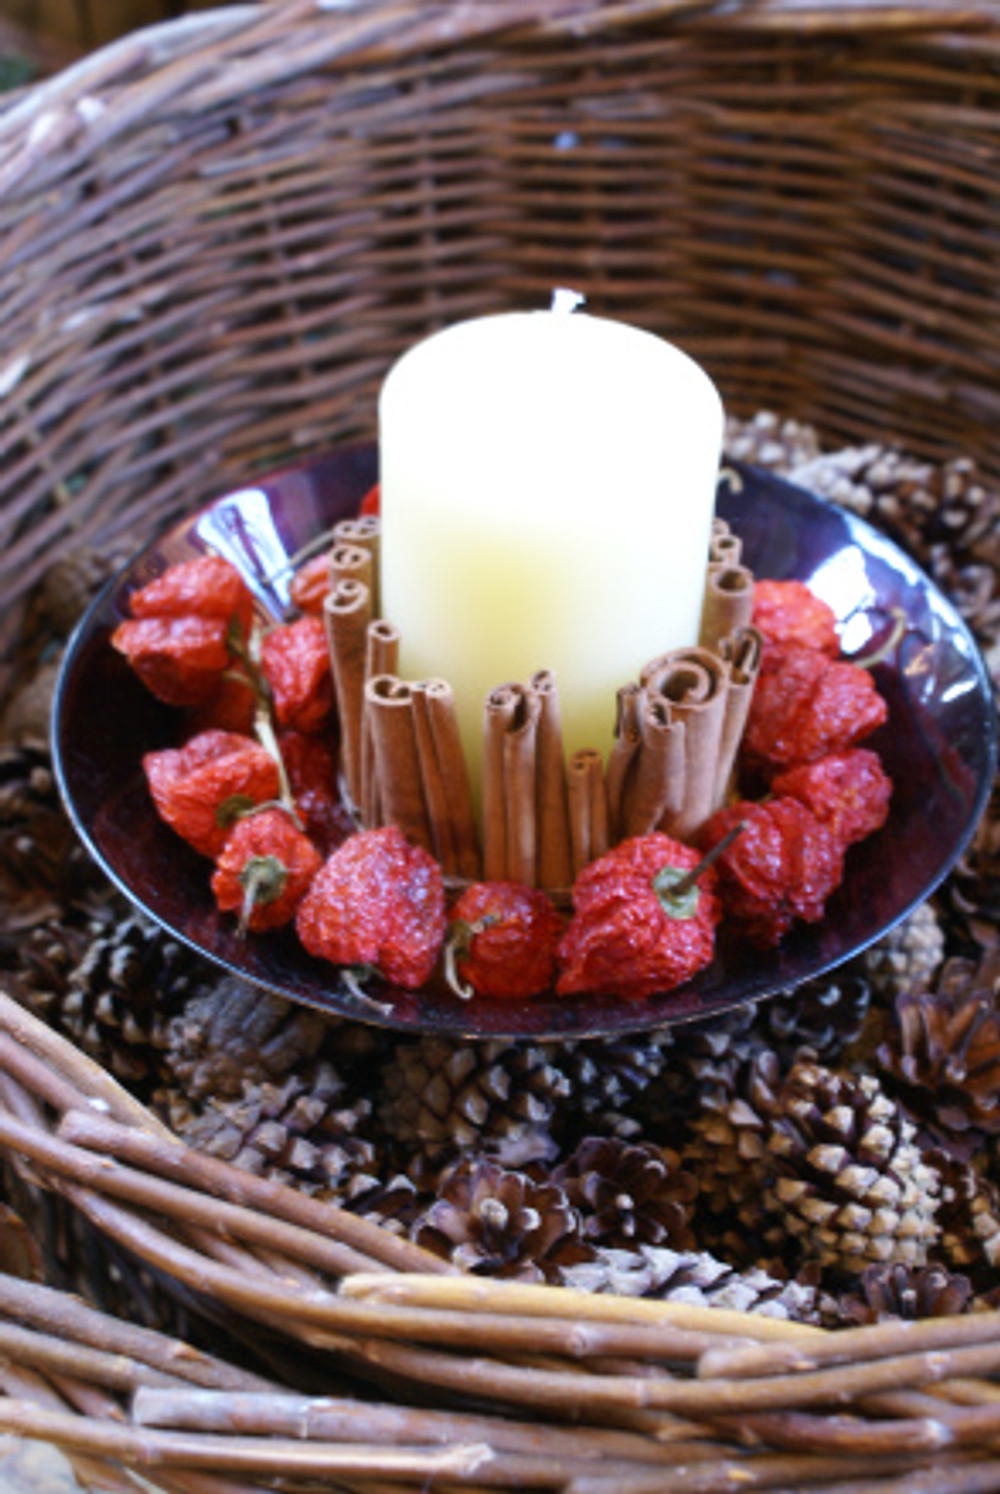 Cinnamon & Chilli Candle